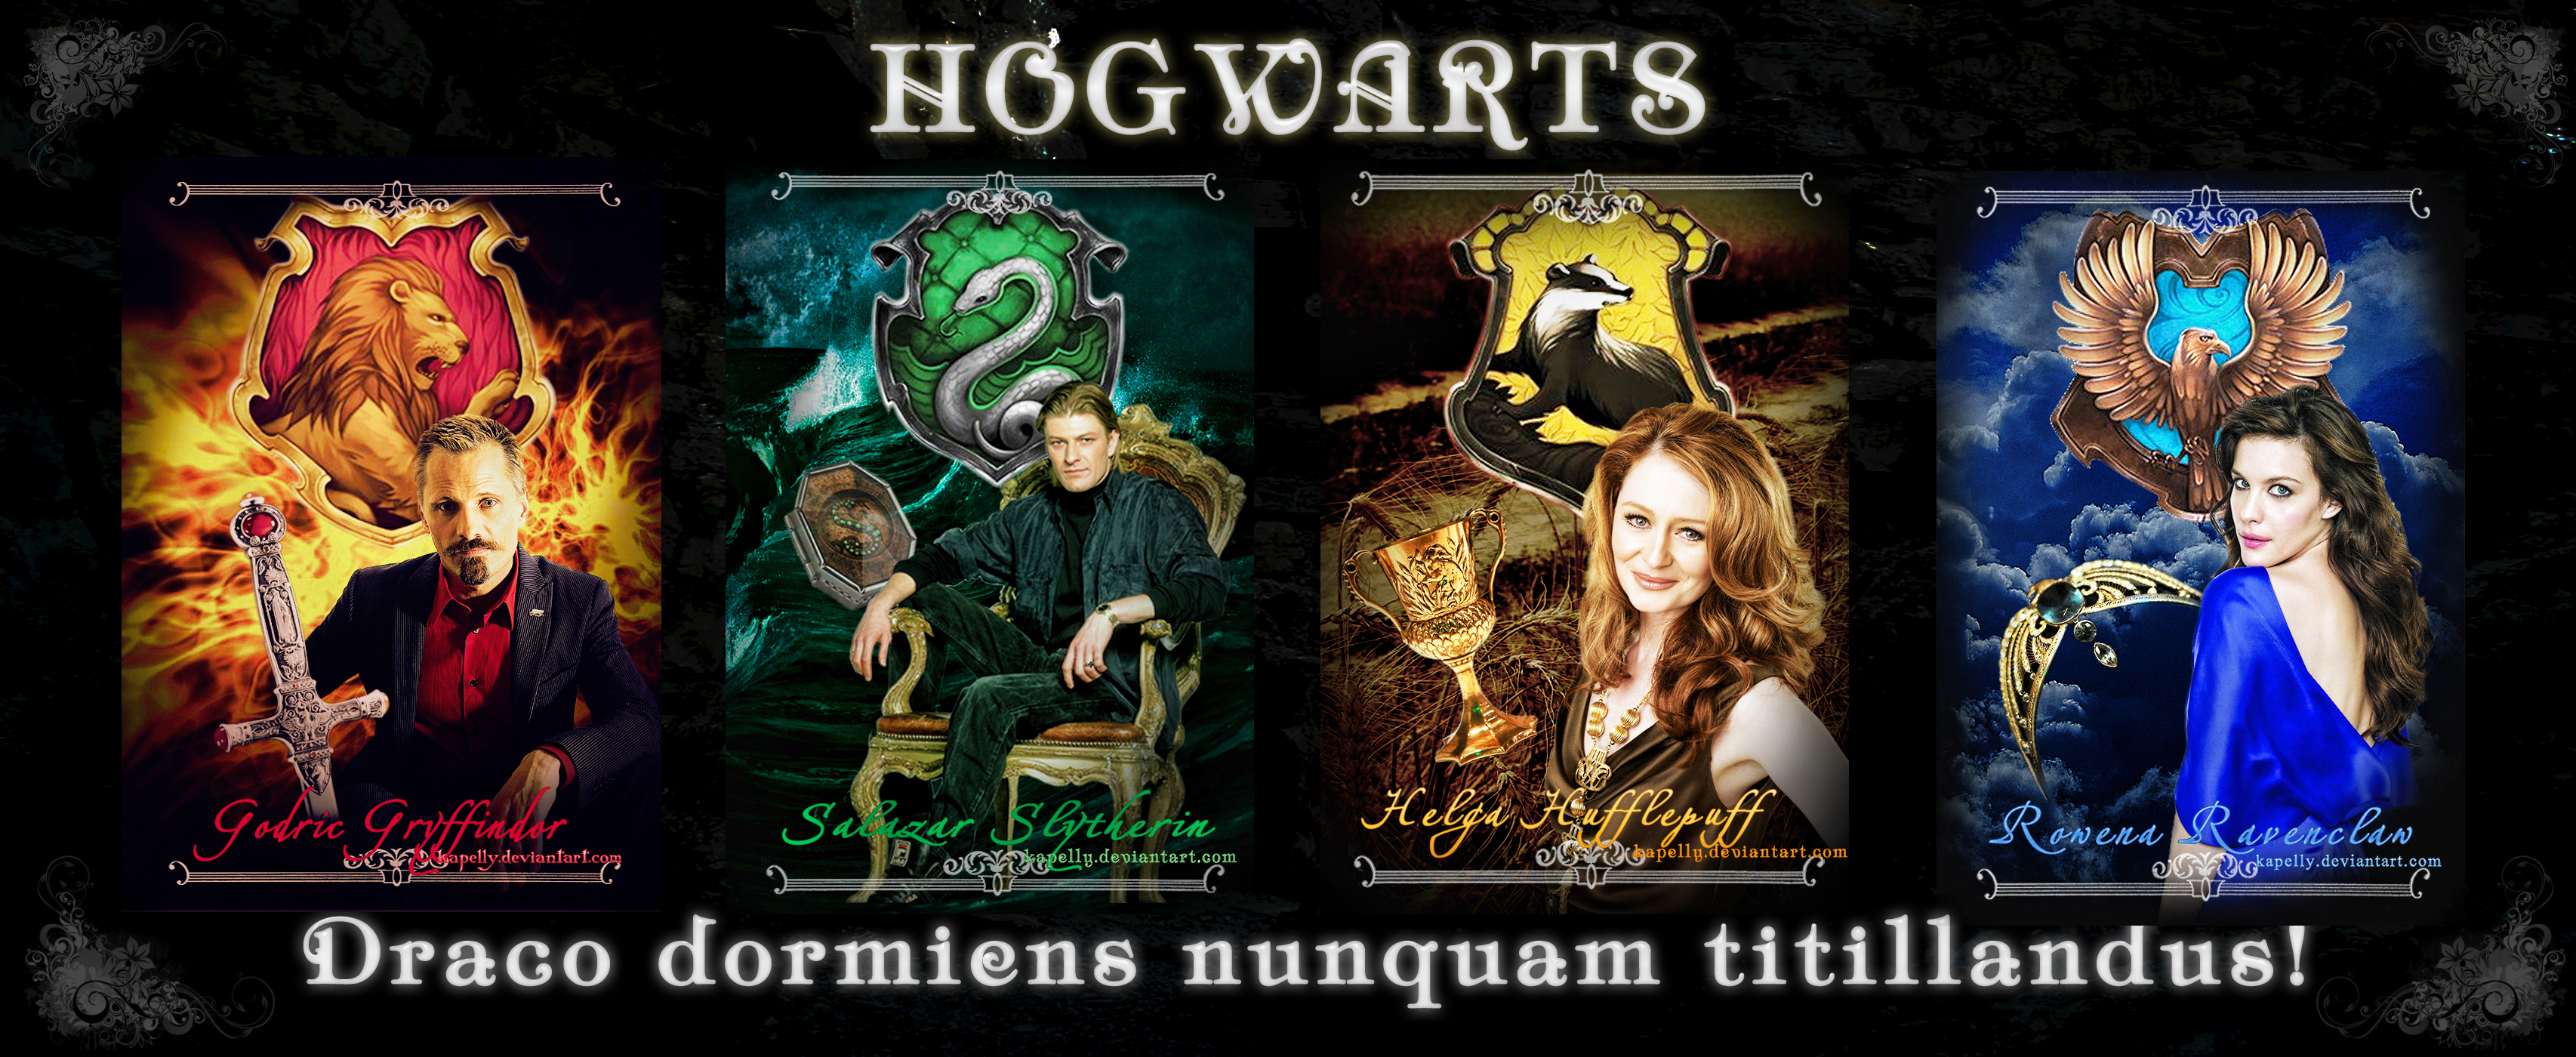 founders of Hogwarts by kapelly on DeviantArt